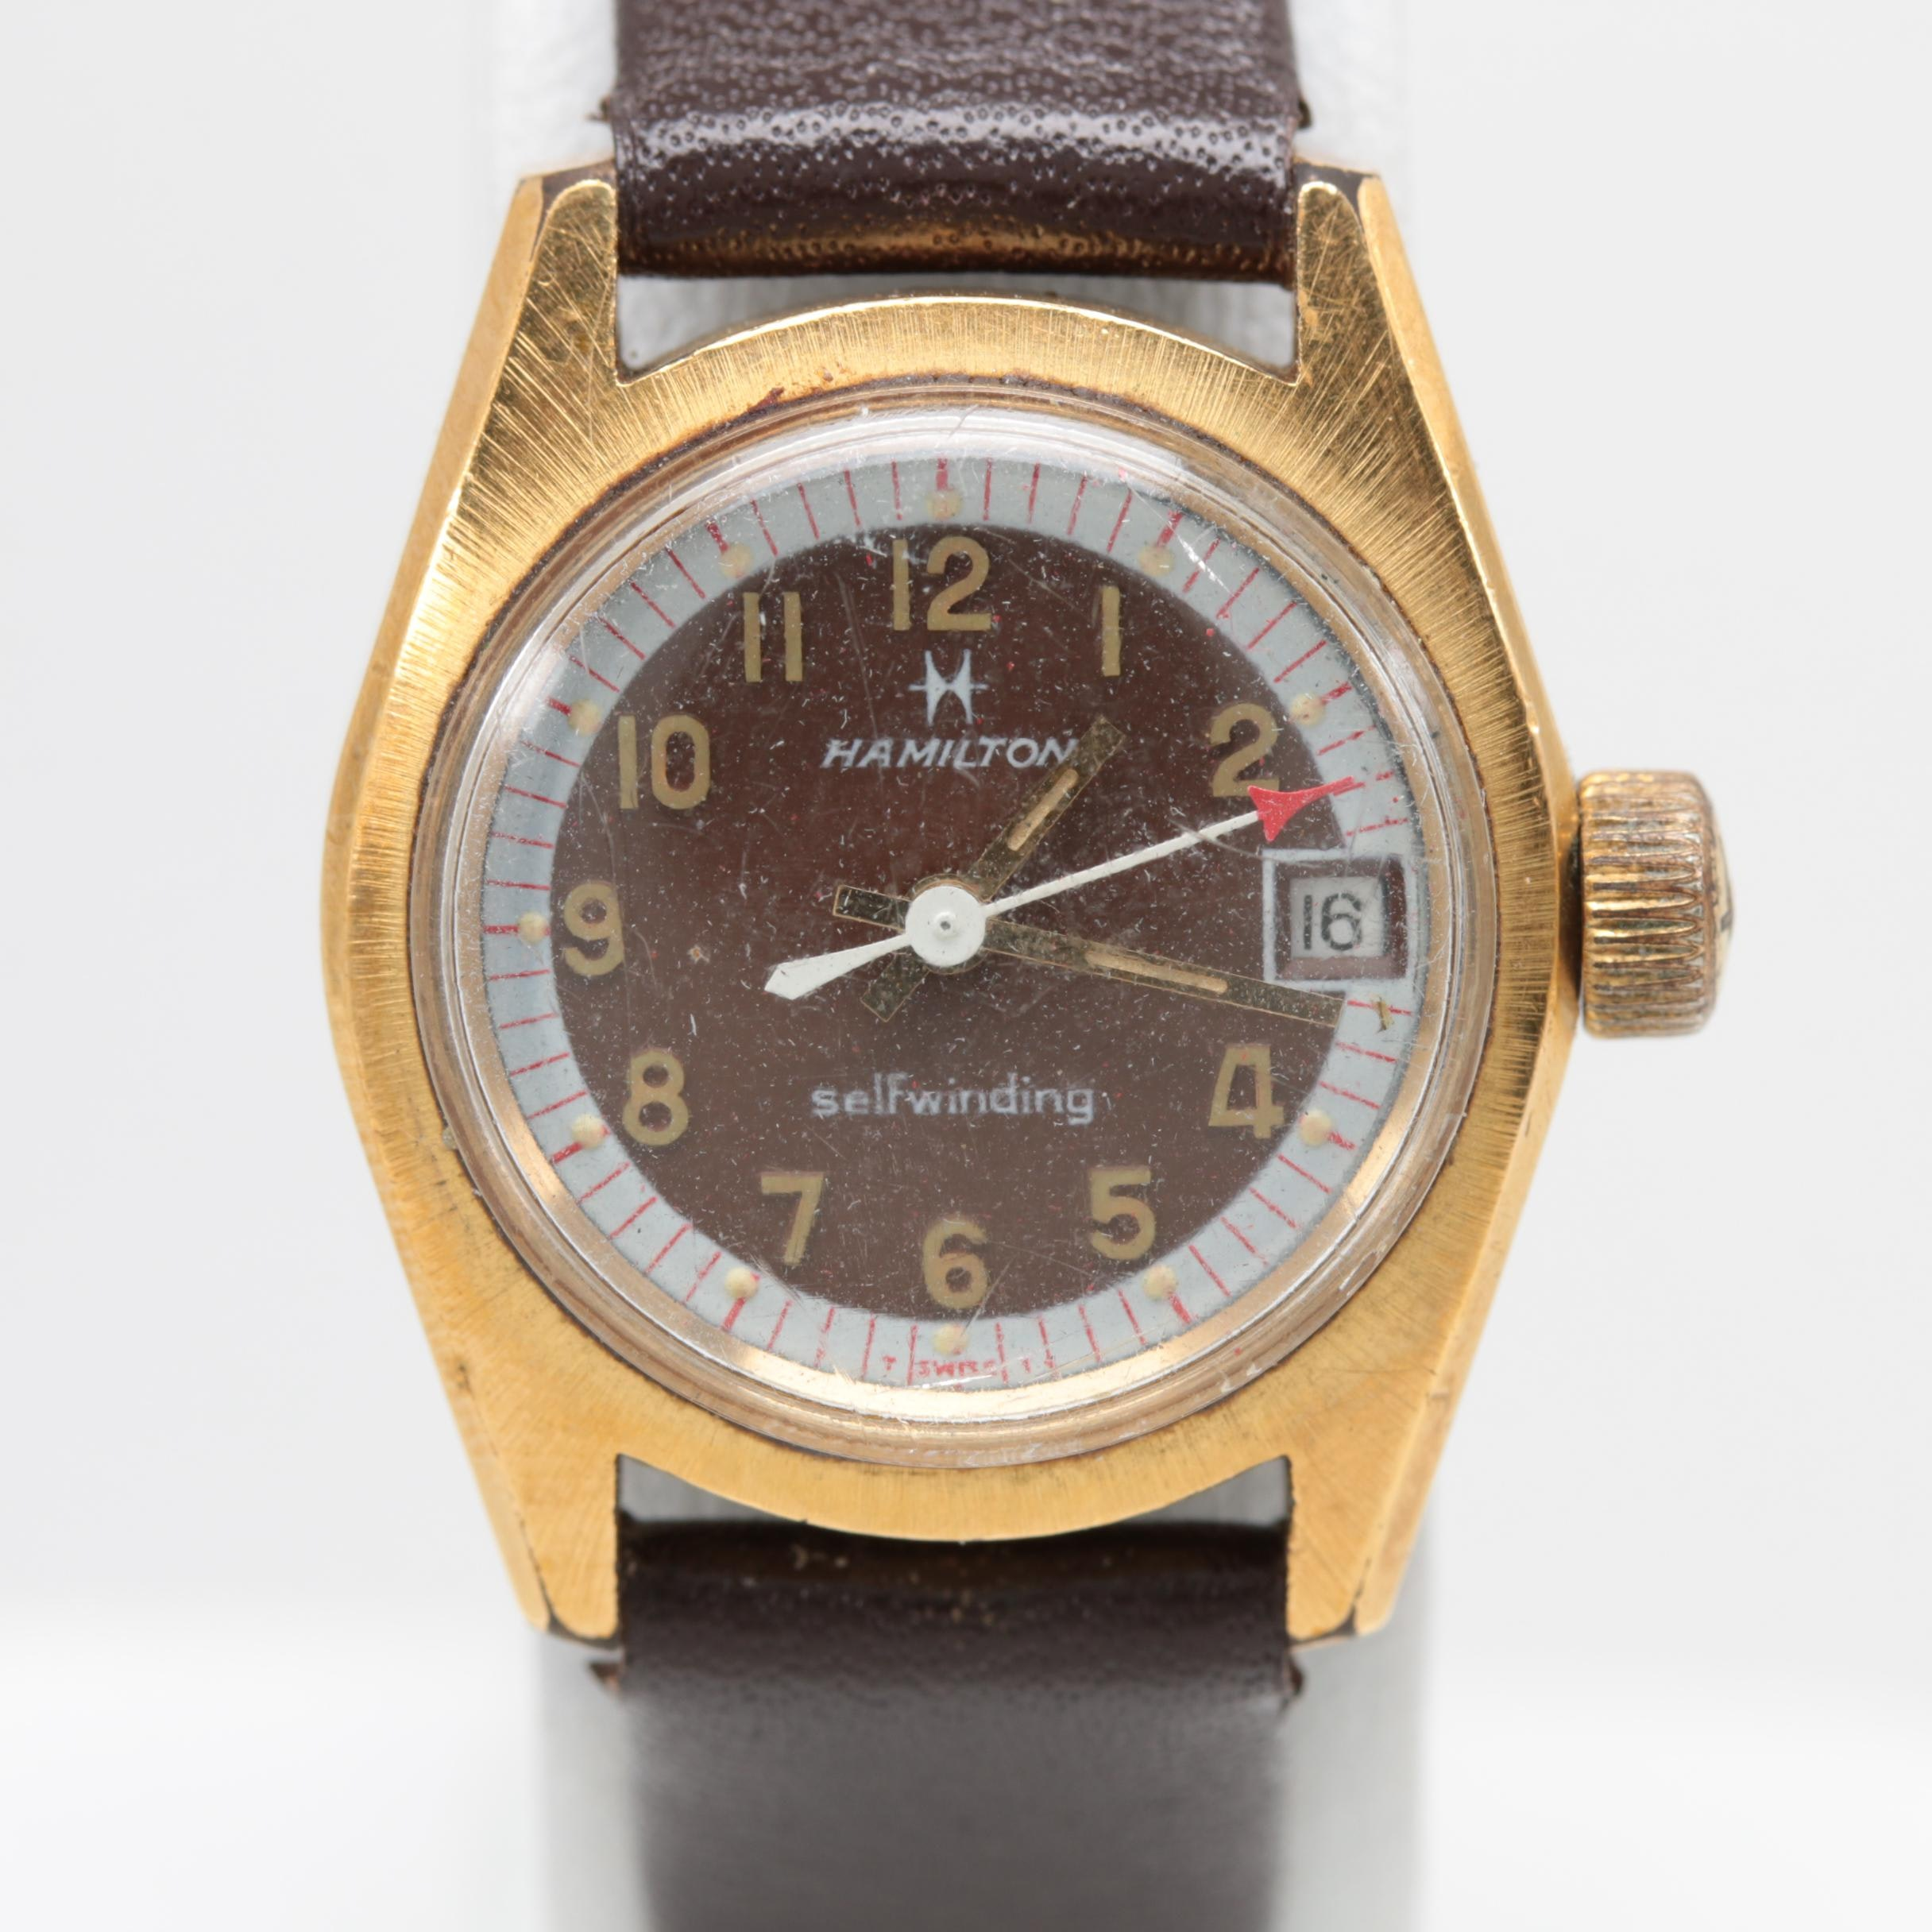 Hamilton Automatic Wristwatch With Date Window